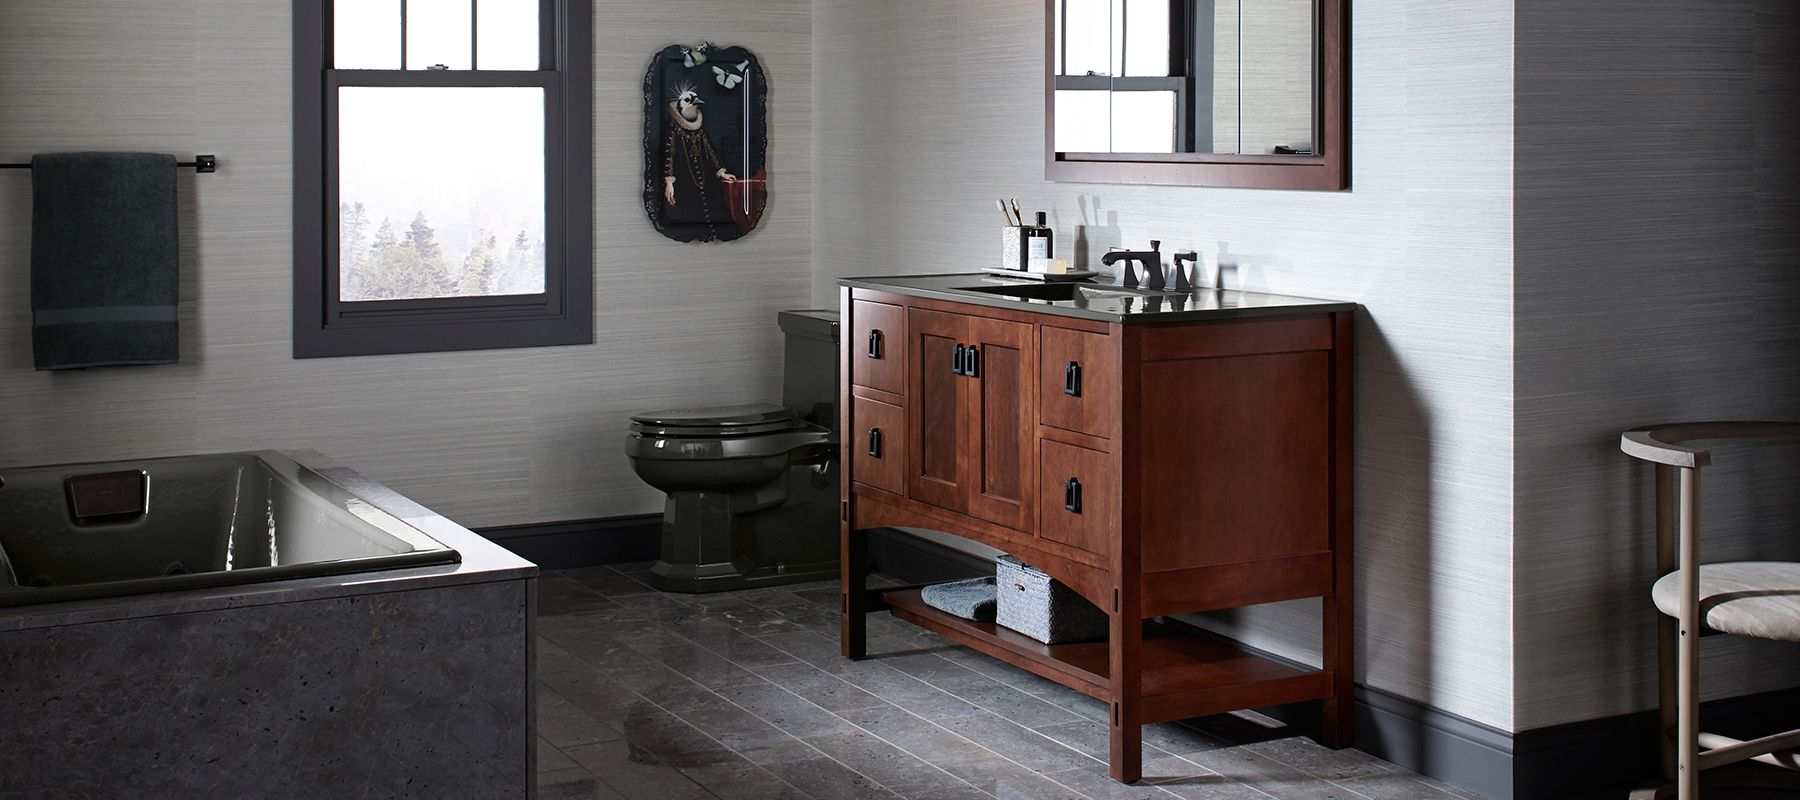 Bathroom Vanity .Co.Za bathroom vanities |bathroom | kohler